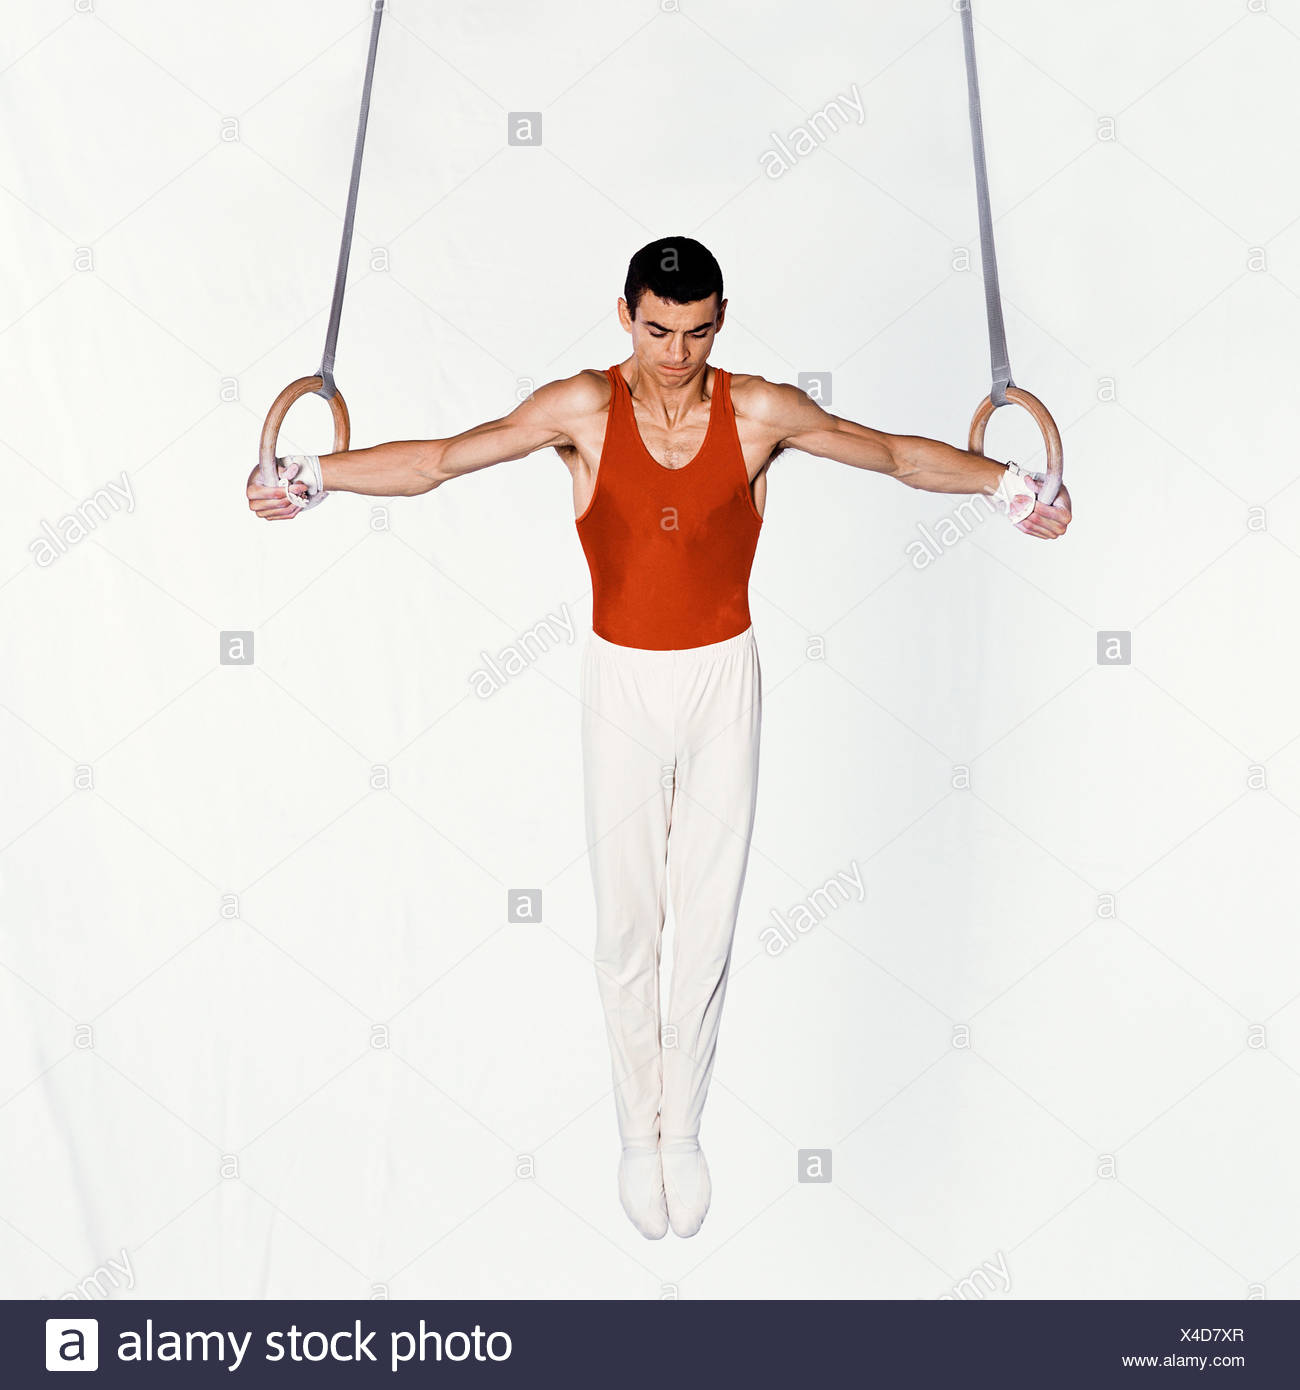 hight resolution of young male gymnast performing routine on rings stock image